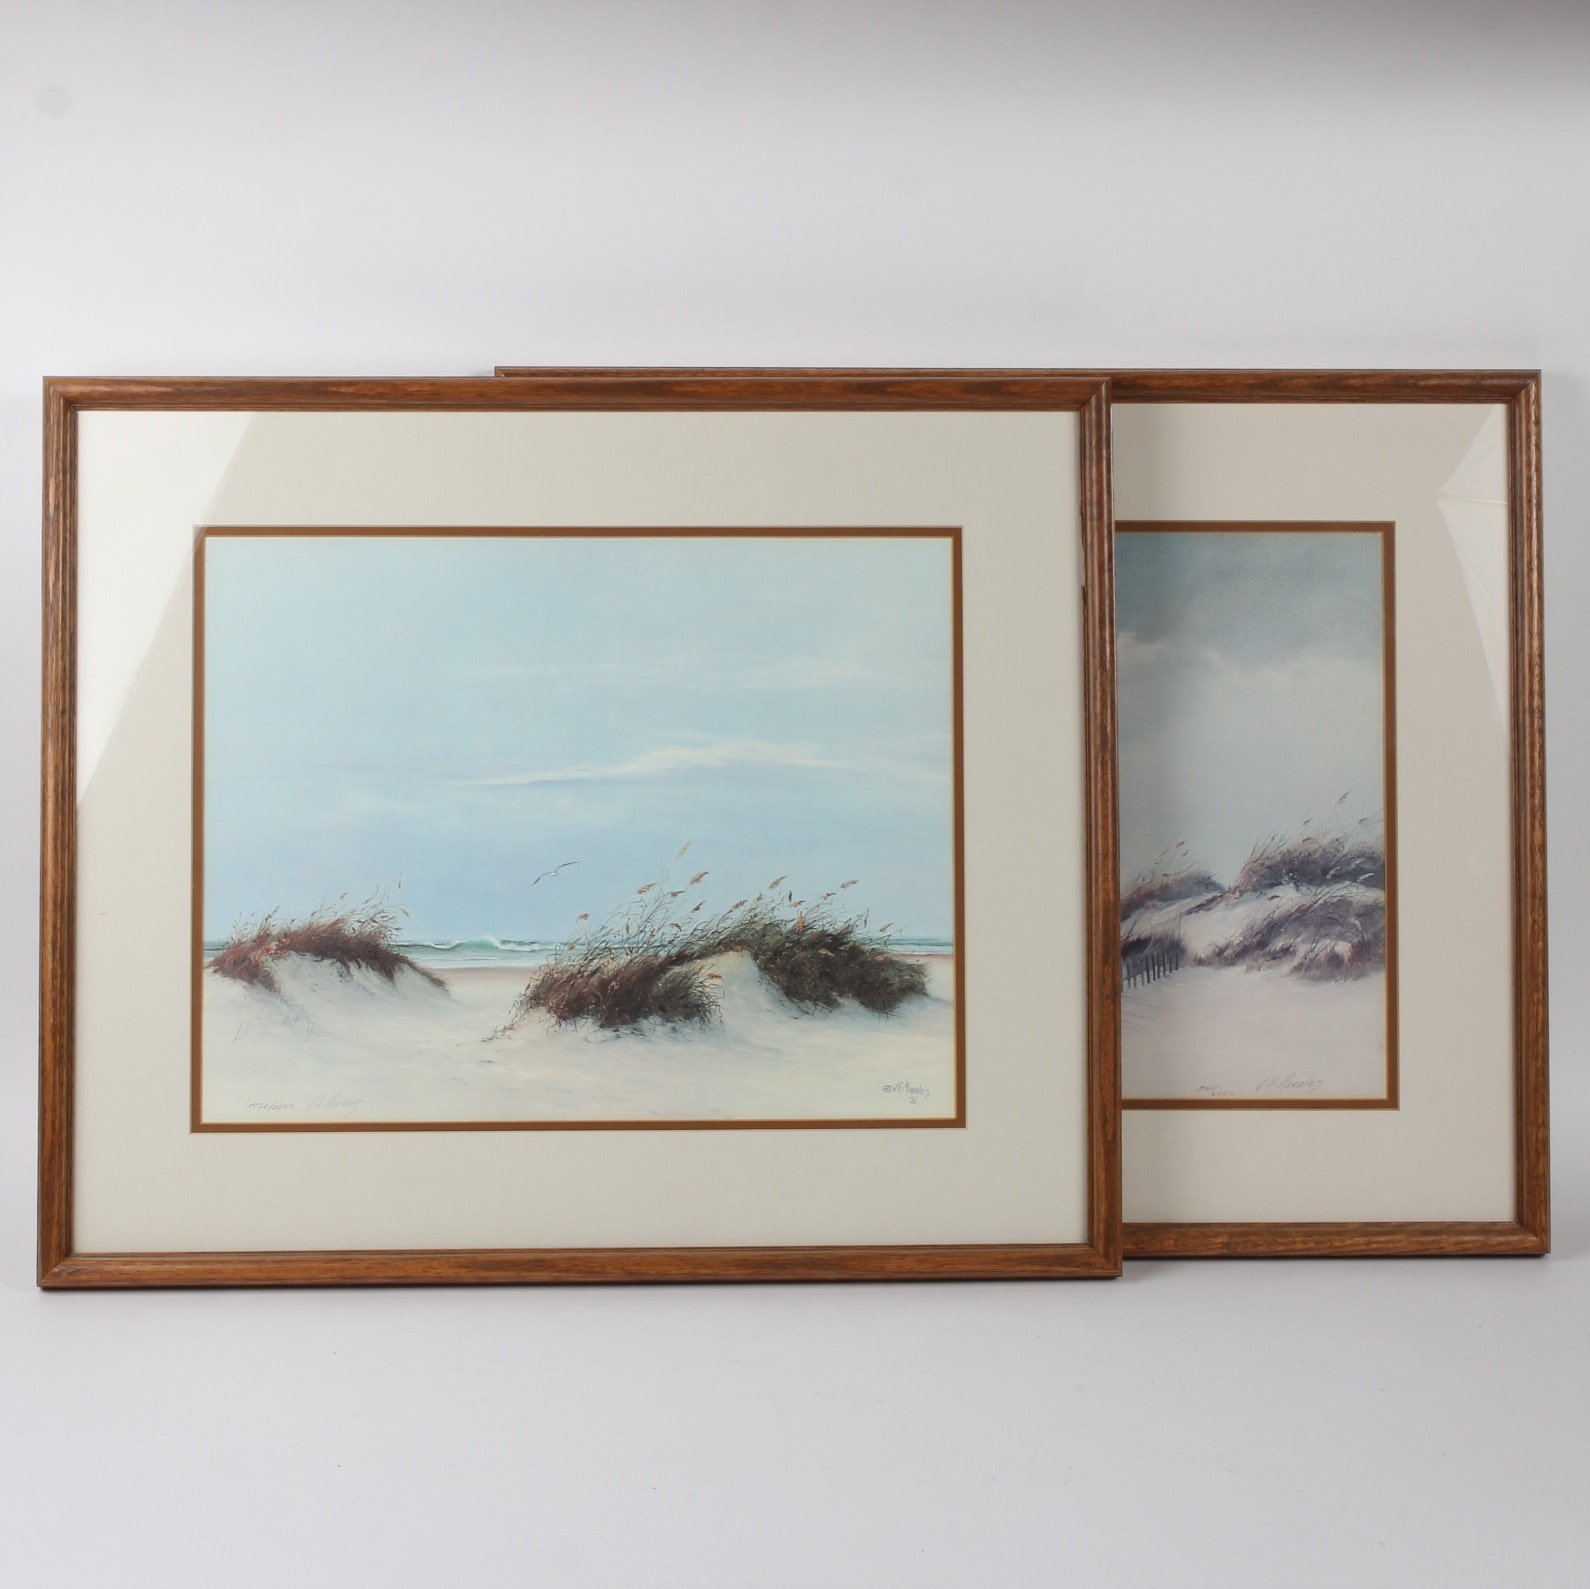 Pair Of V F Morales Limited Edition Lithographs Ebth